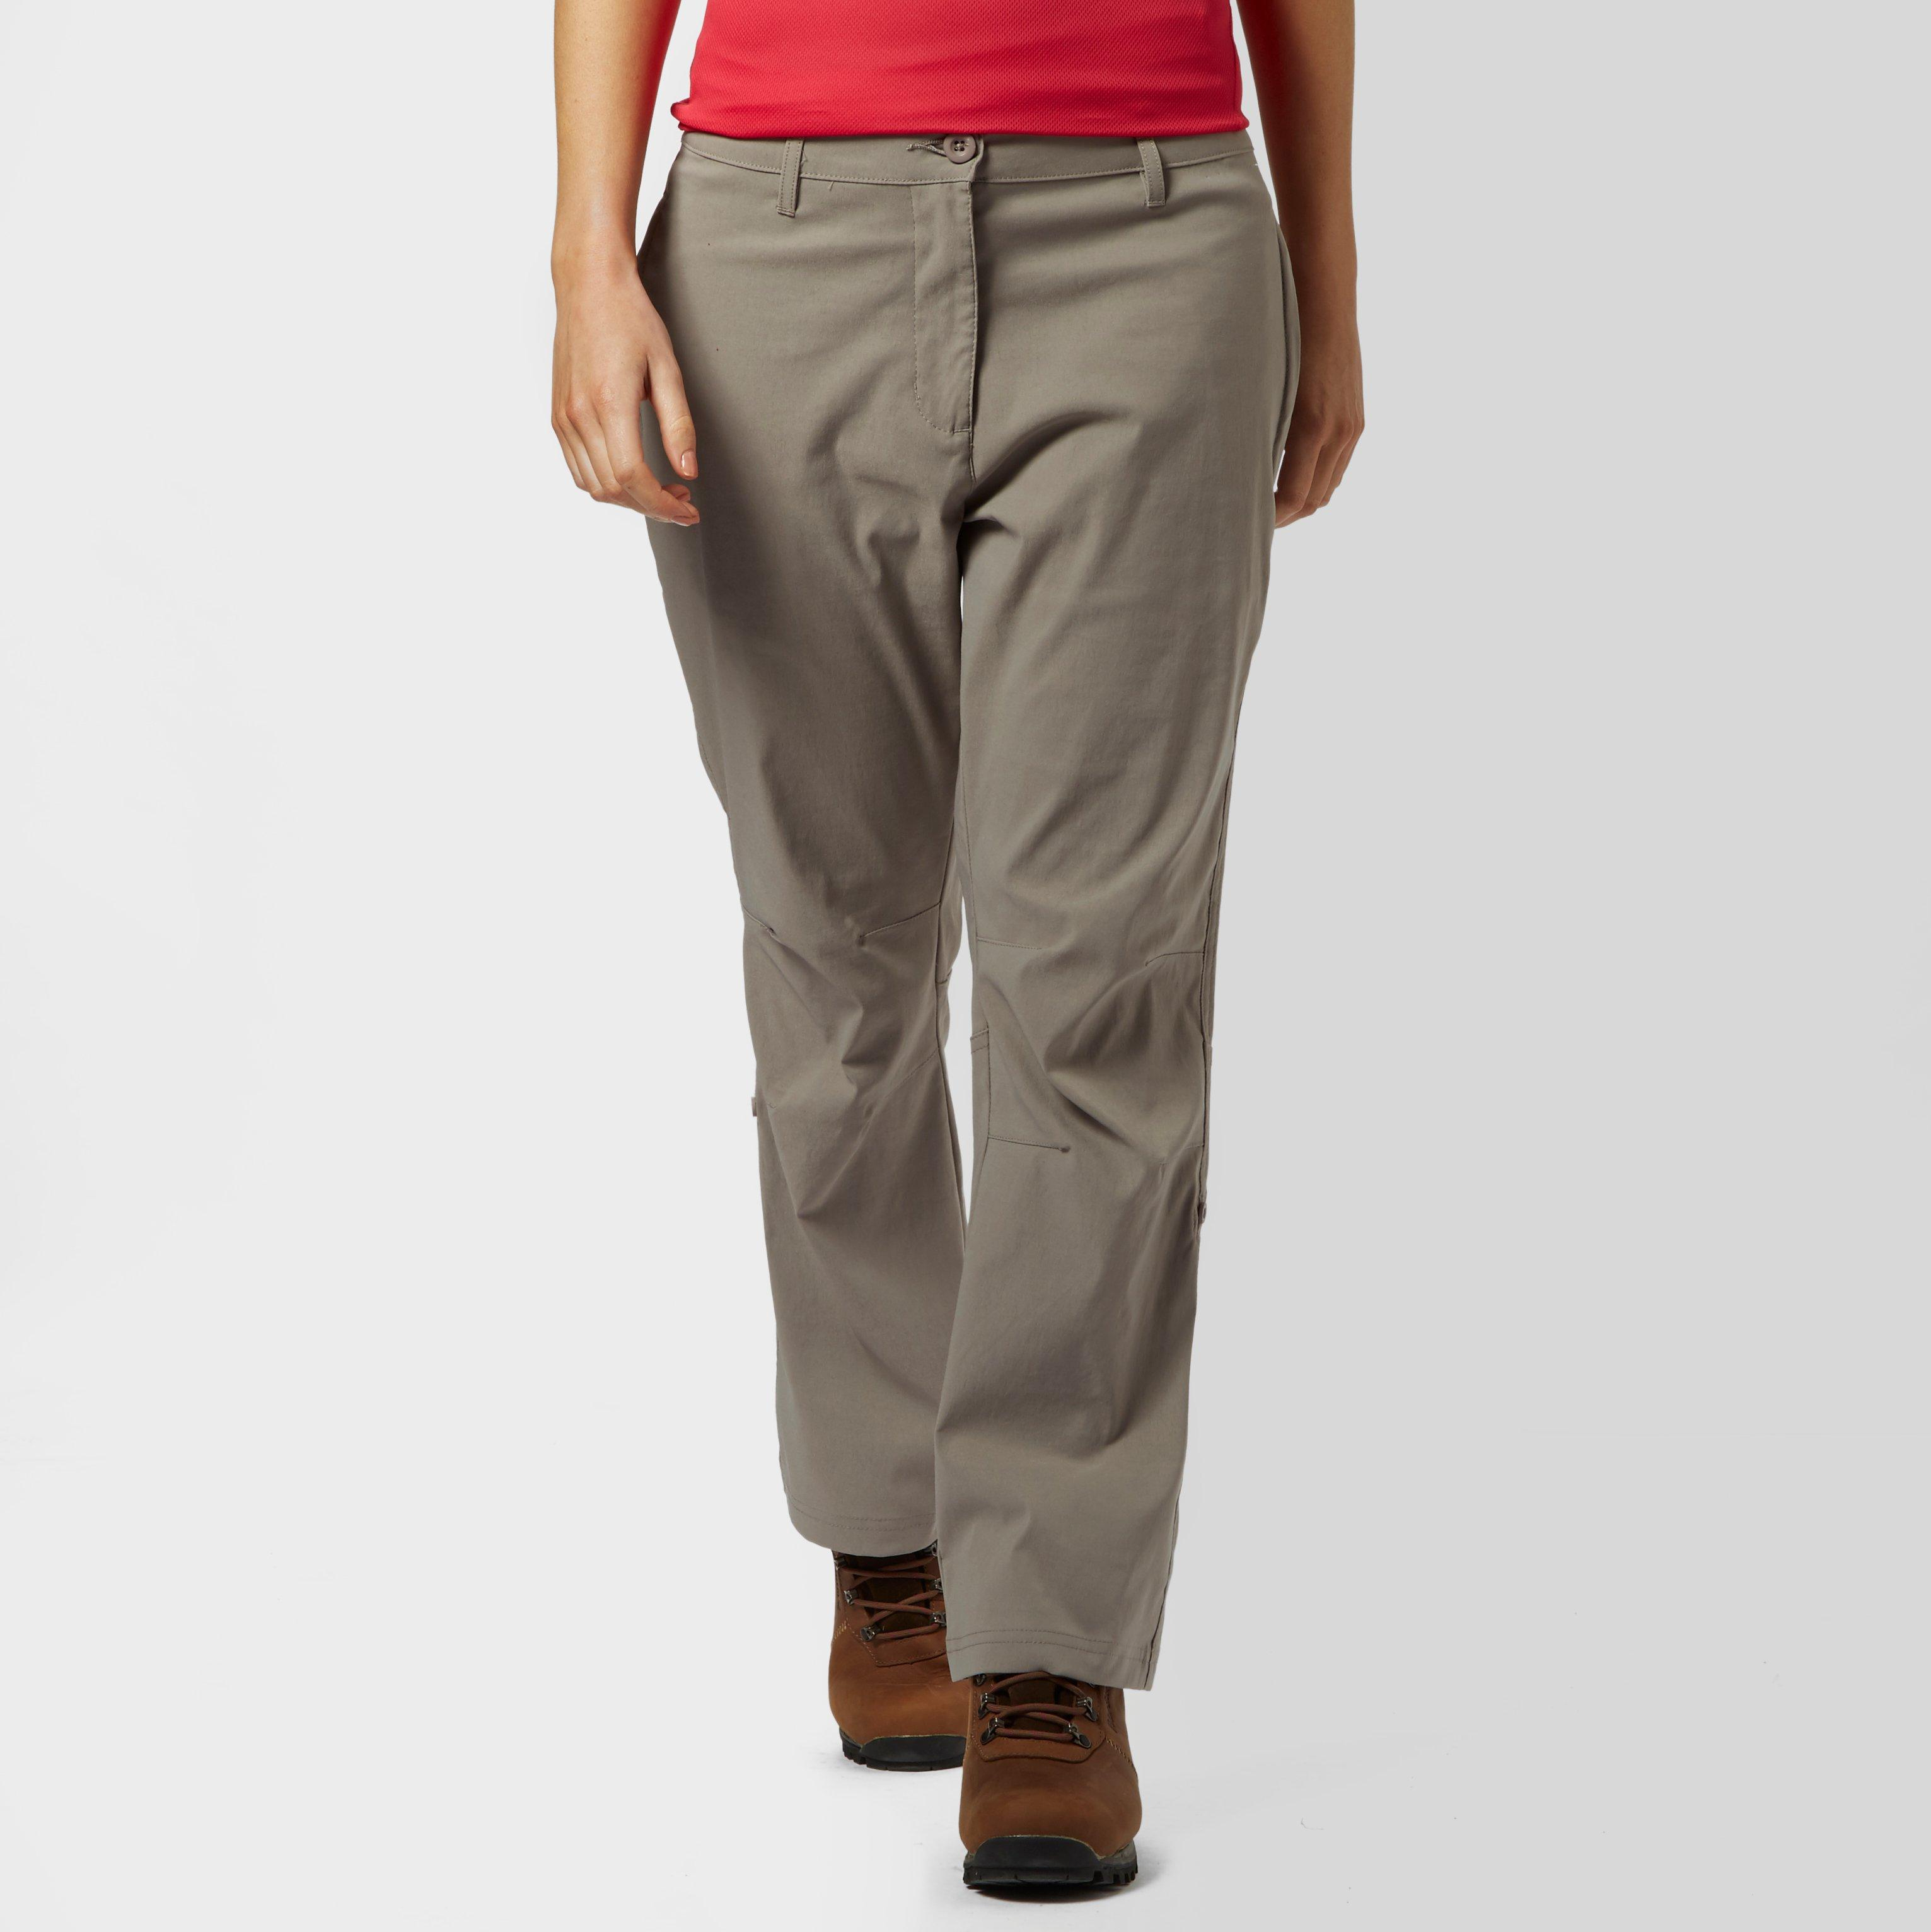 Peter Storm Peter Storm womens Stretch Roll-Up Trousers - Grey, Grey